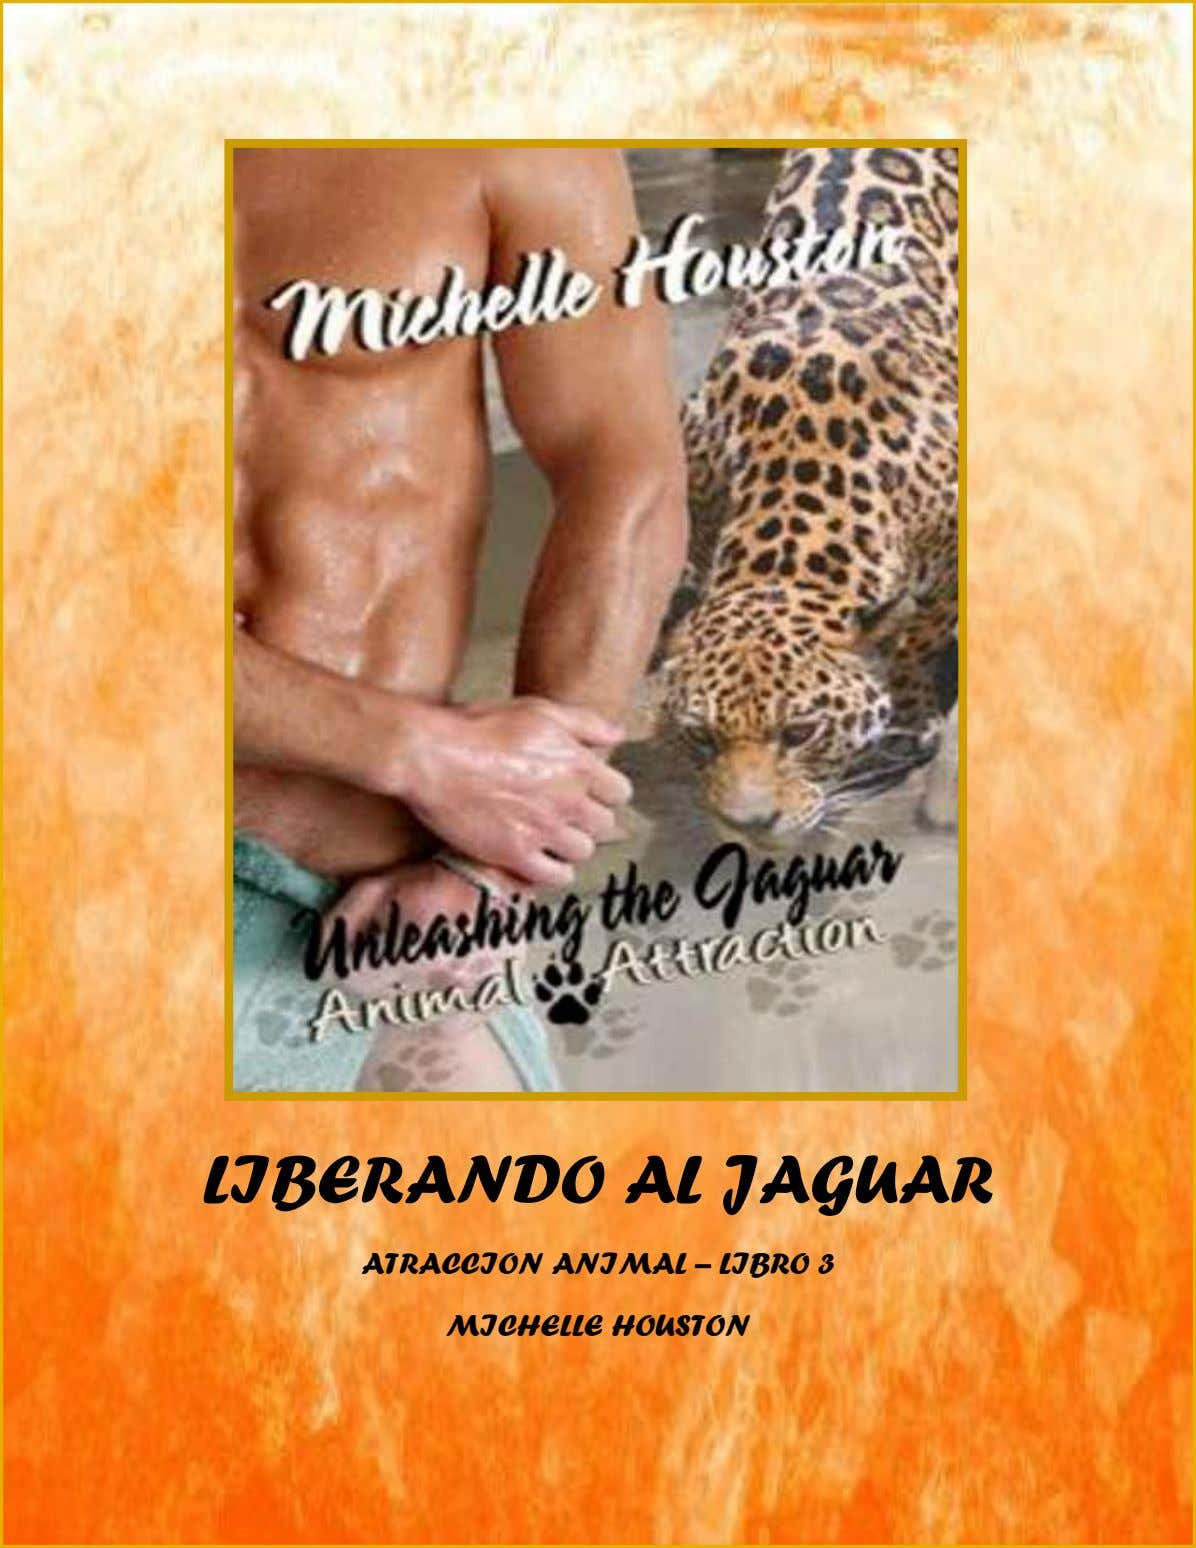 LIBERANDO AL JAGUAR ATRACCION ANIMAL – LIBRO 3 MICHELLE HOUSTON